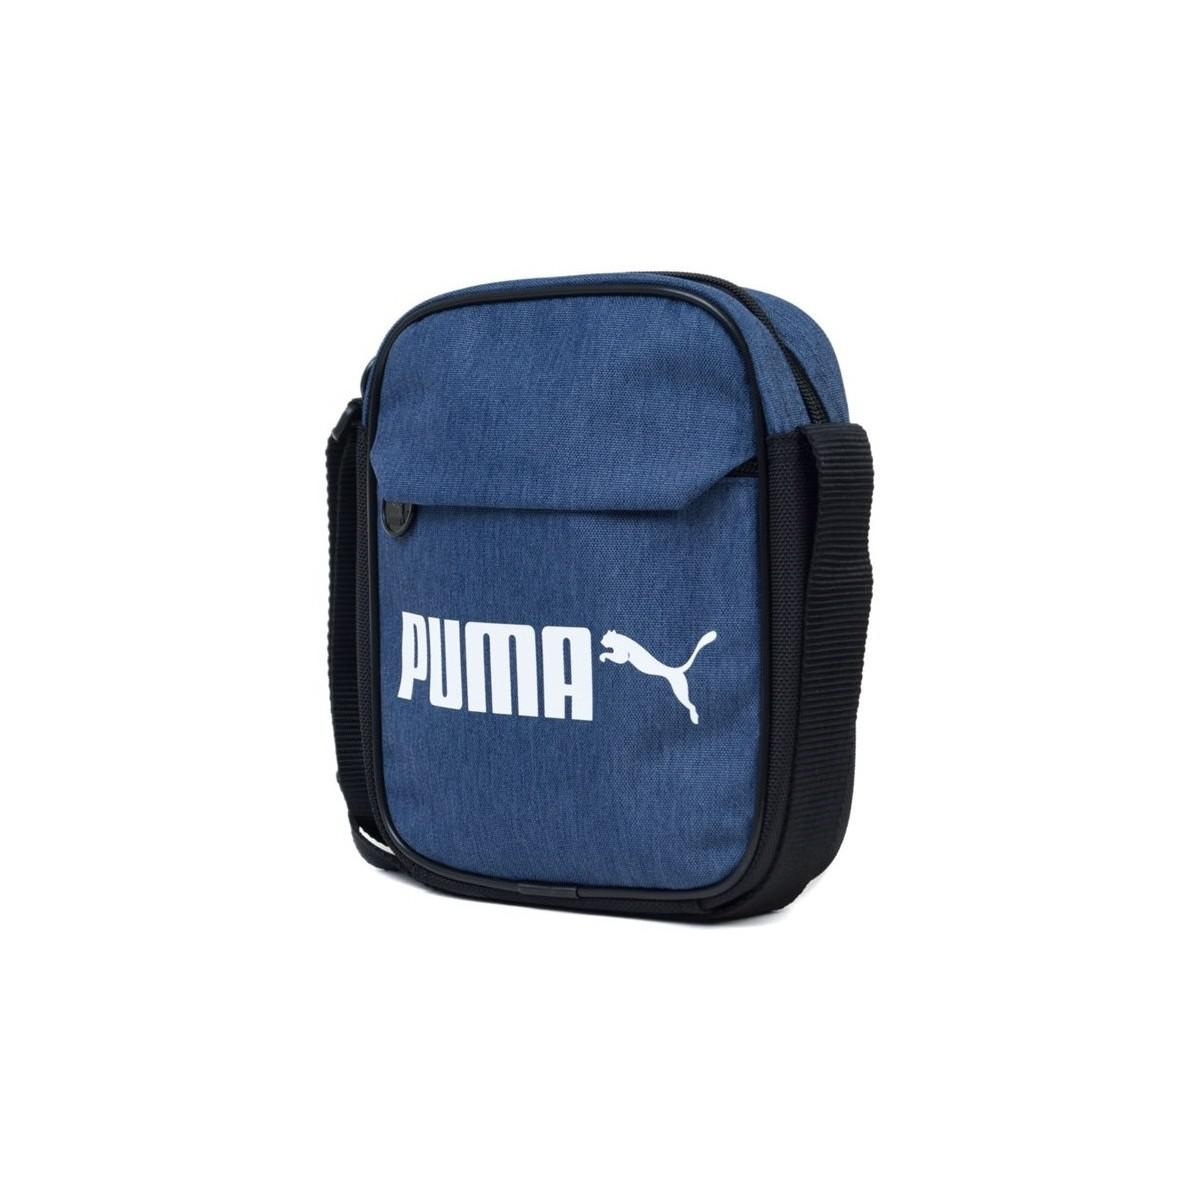 89dc249973 PUMA Campus Portable Woven Men s Messenger Bag In Blue in Blue for ...